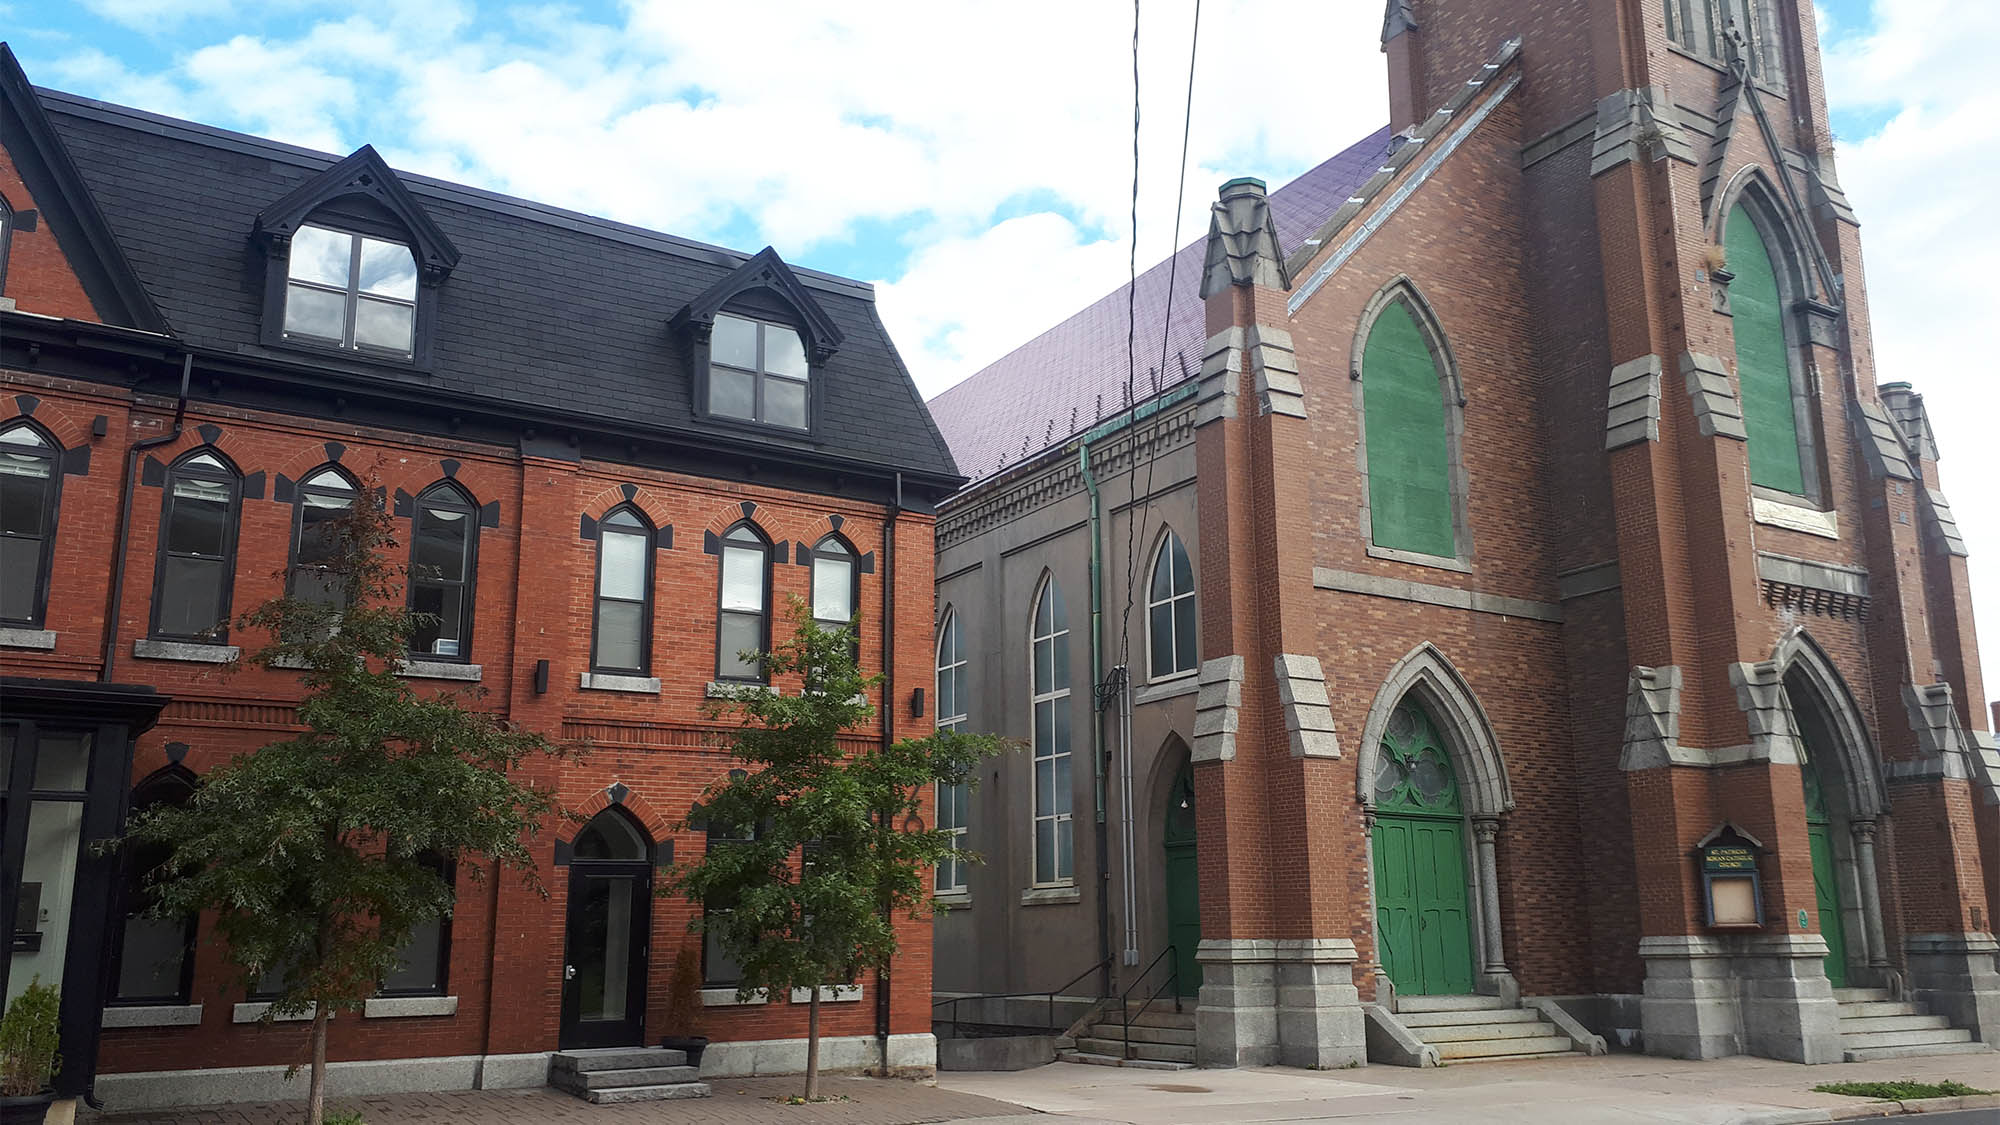 The approved building is to be constructed behind the old rectory (left), adjacent to St. Patrick's Church (right).